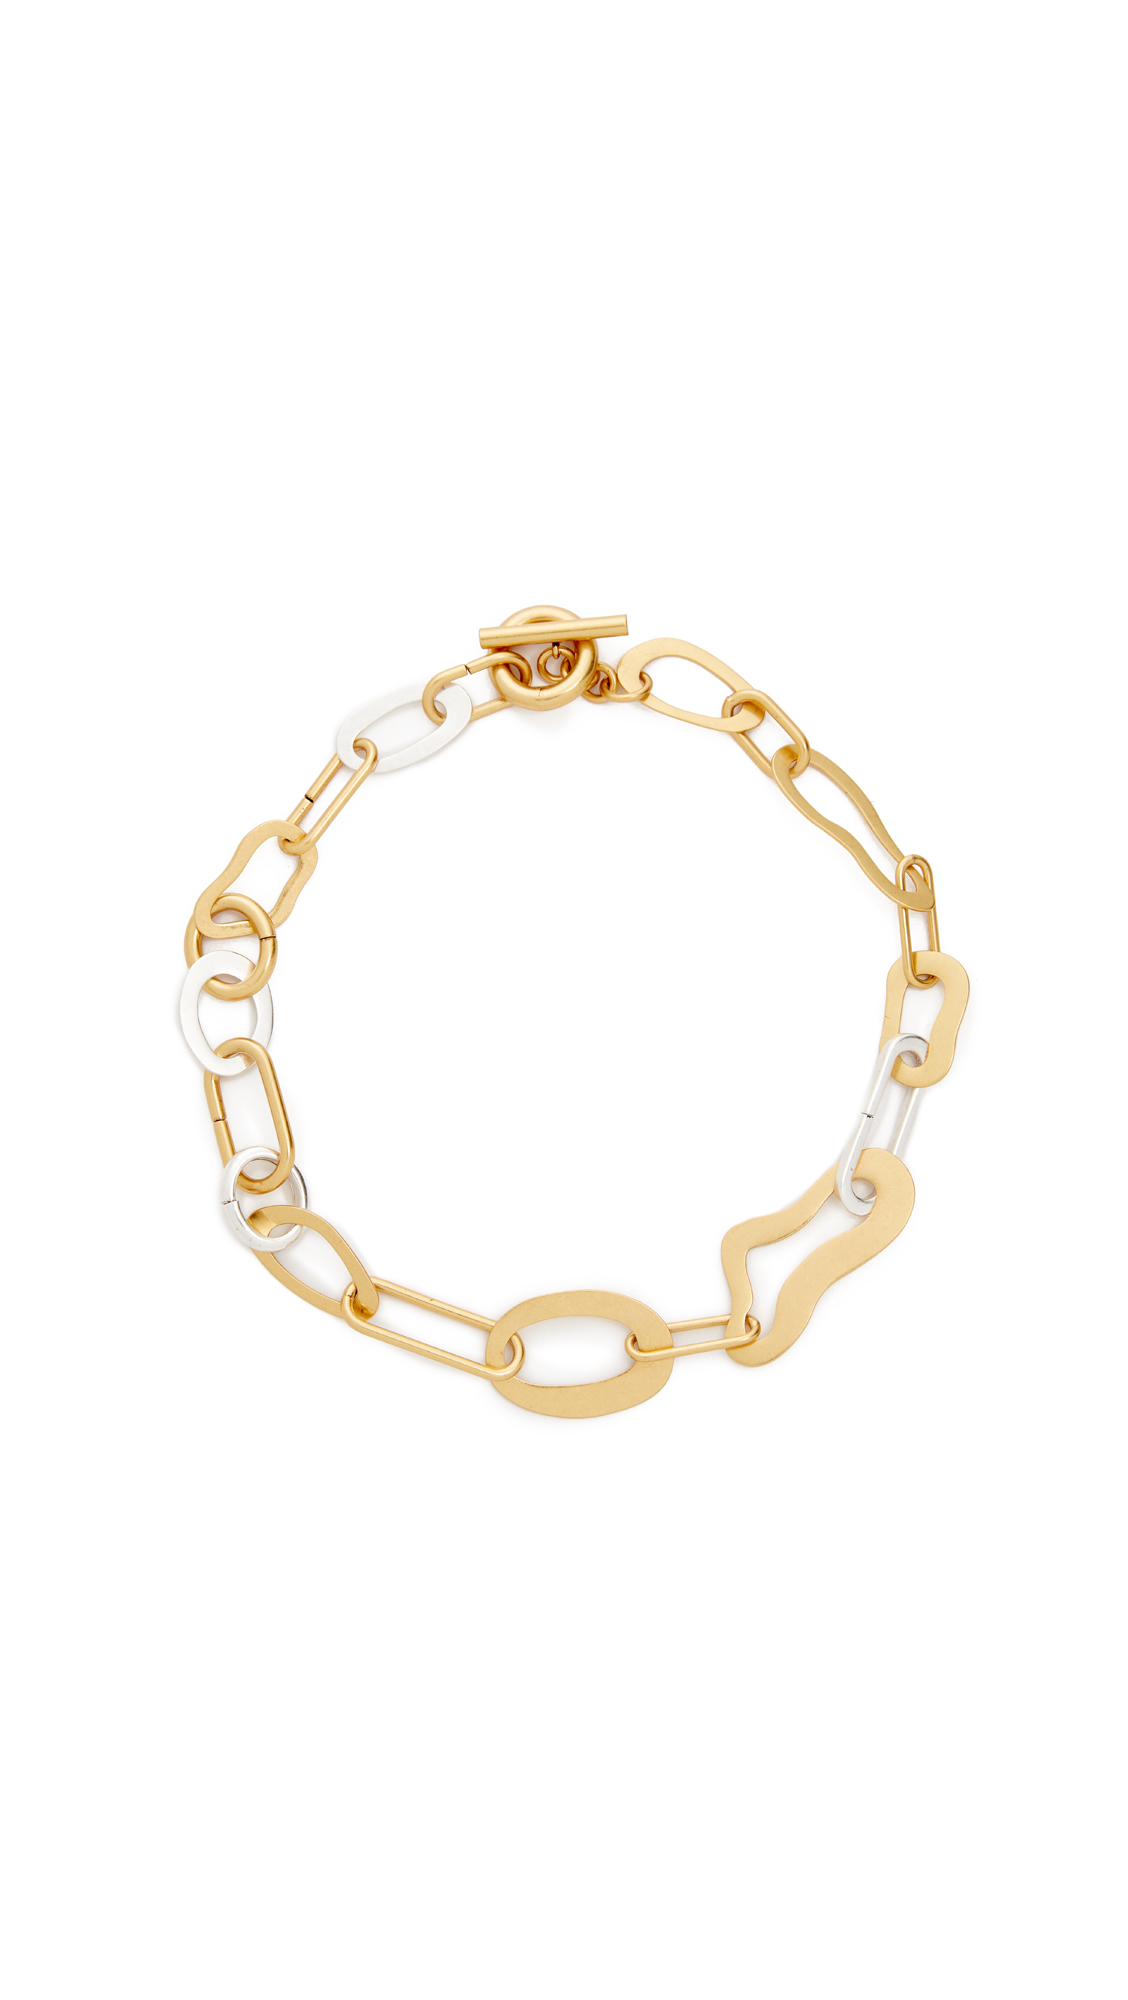 Madewell Abstract Link Necklace - Mixed Metals